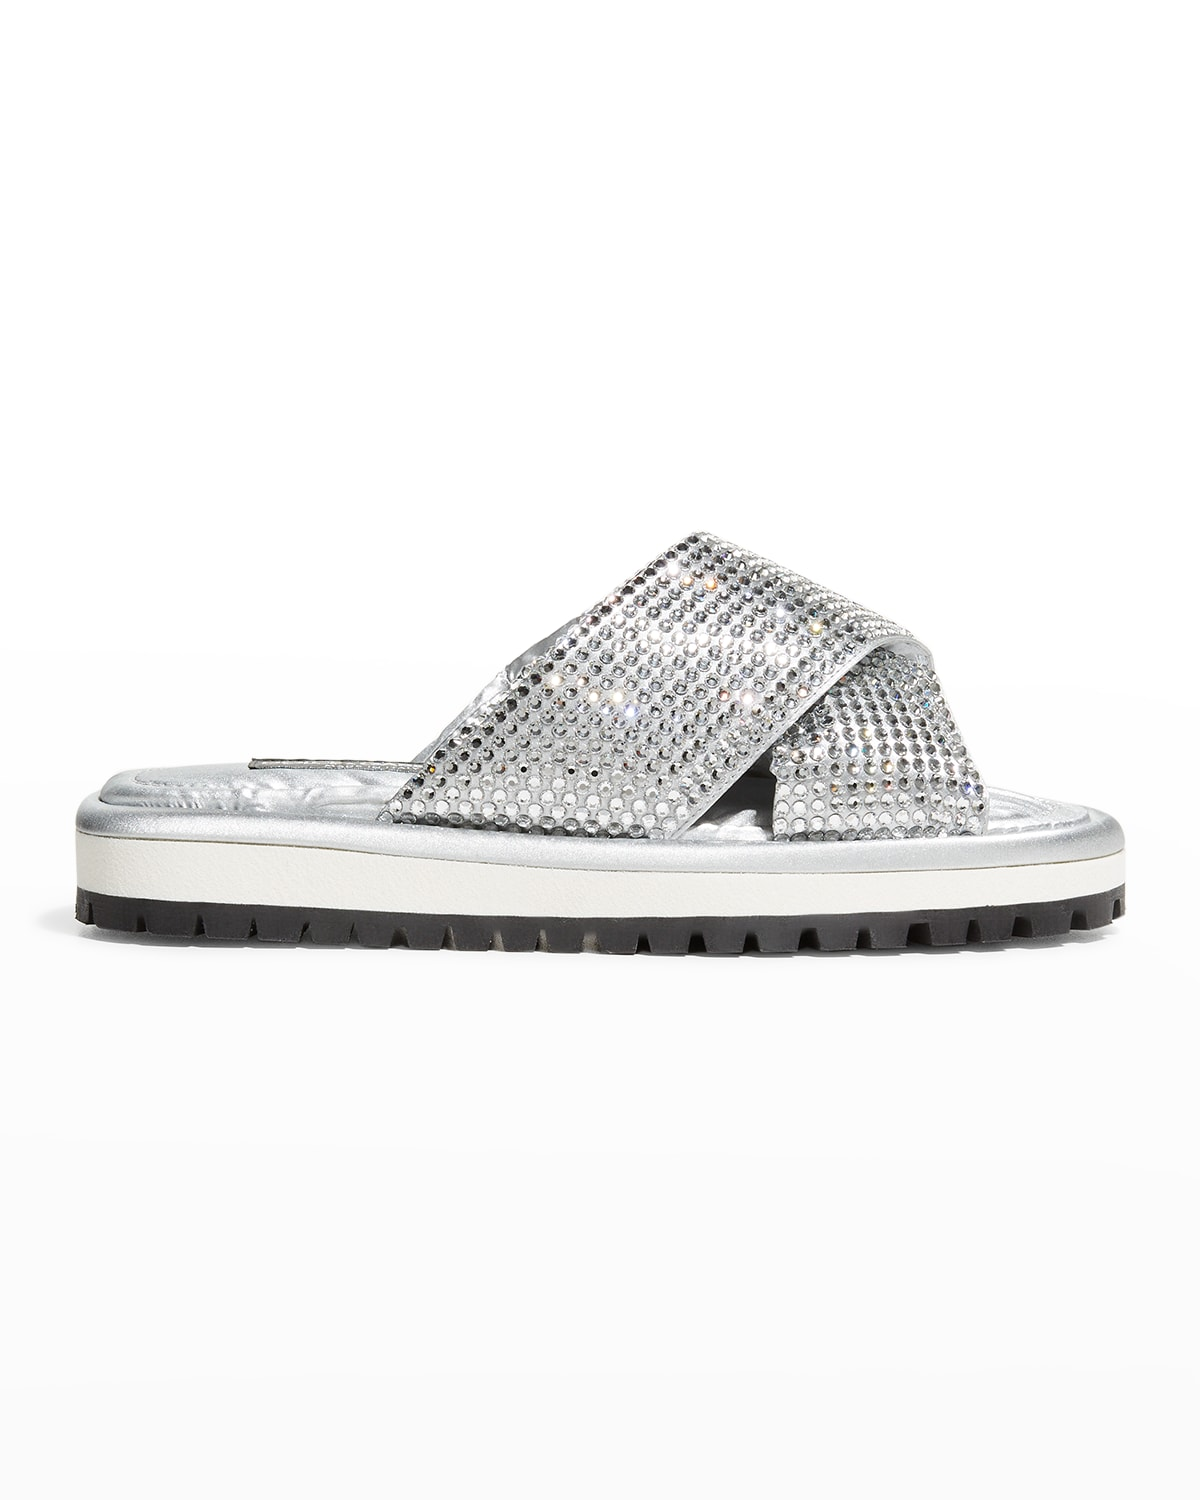 Quilted Nylon Allover Strass Puffy Slipper Sandals